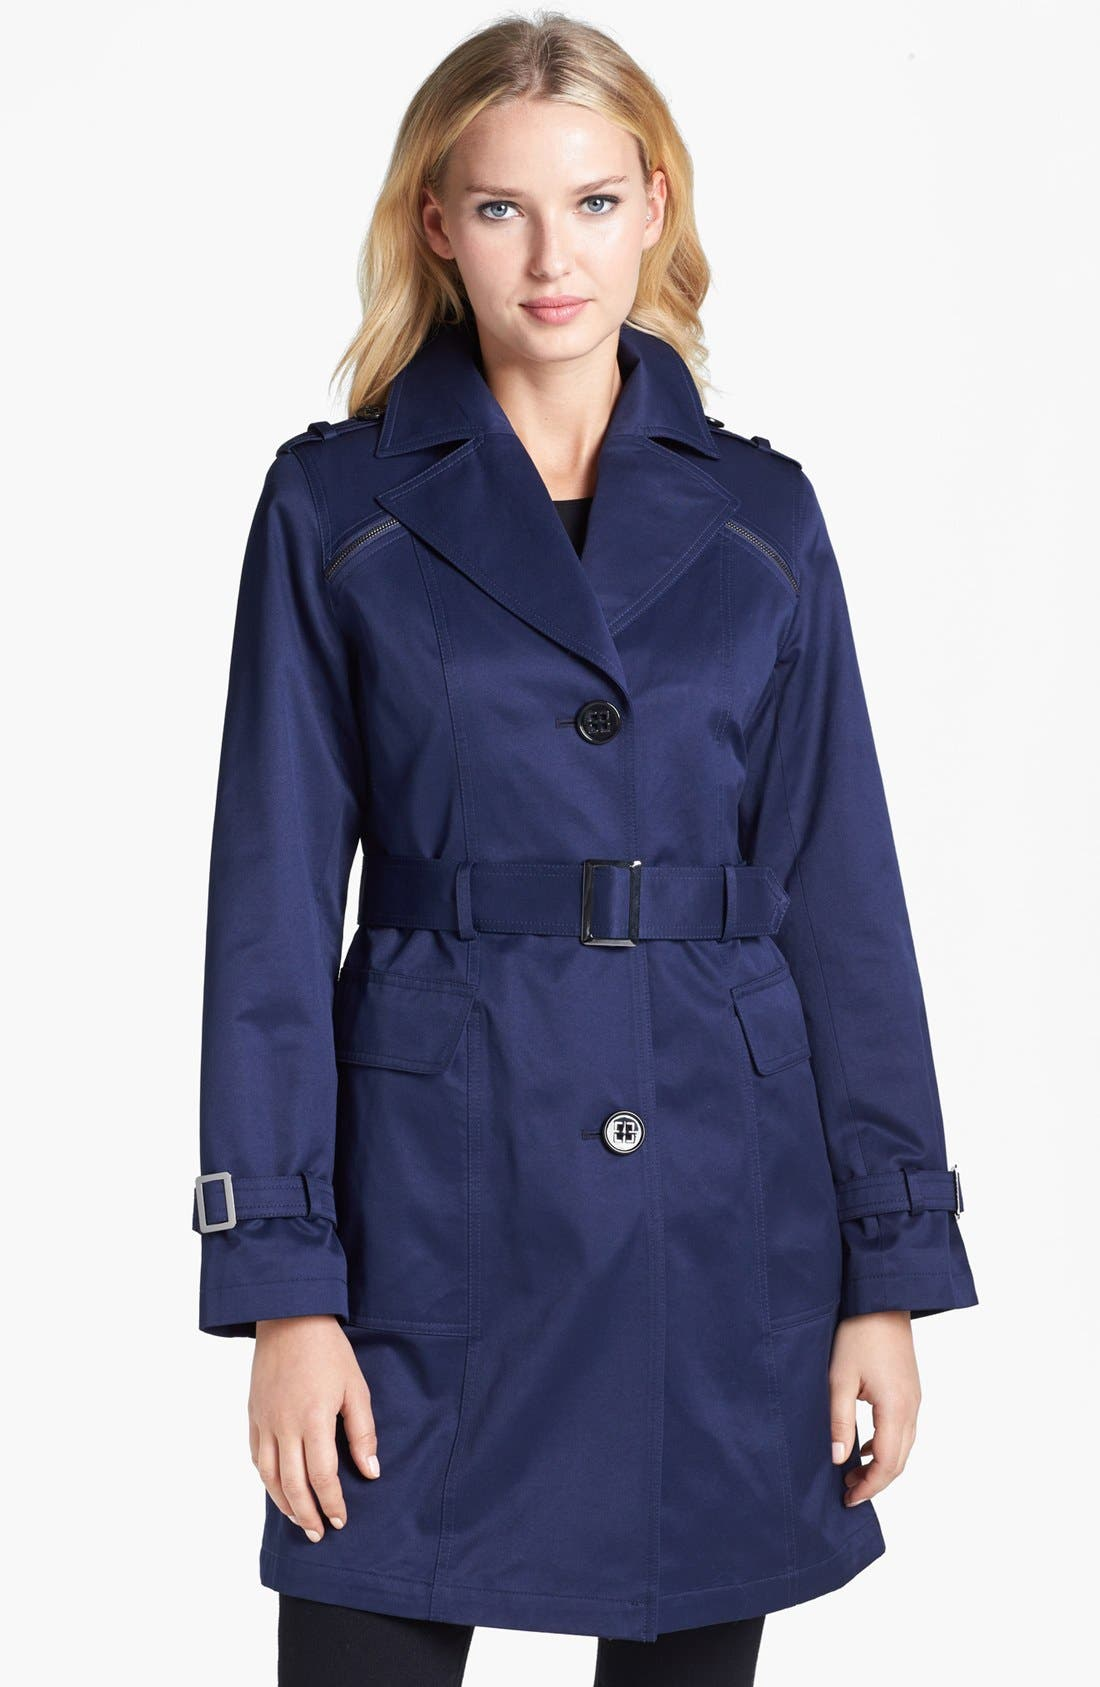 Alternate Image 1 Selected - Gallery Belted Trench Coat (Regular & Petite) (Nordstrom Online Exclusive)